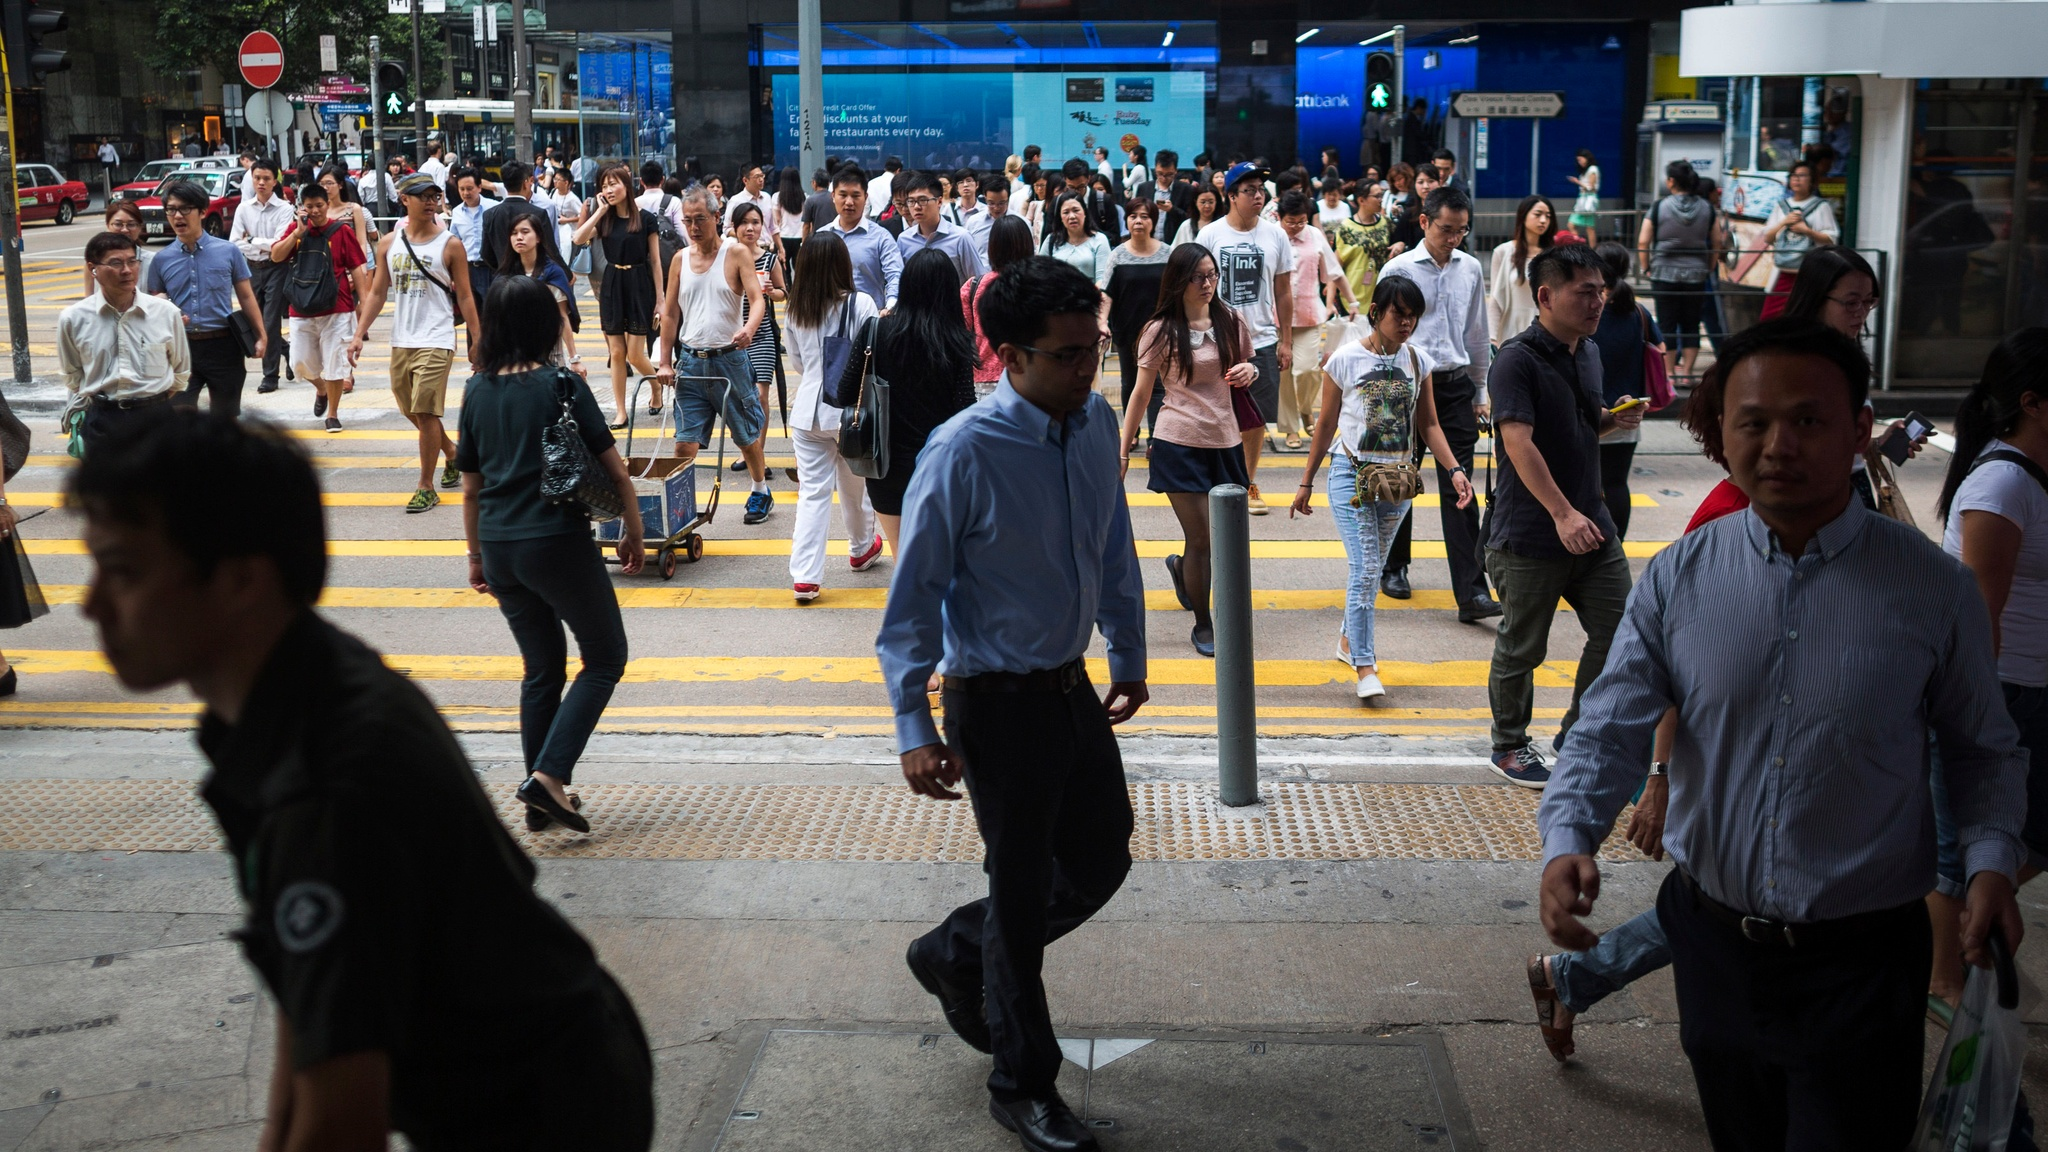 Asian markets cautious on fears over trade, global economy